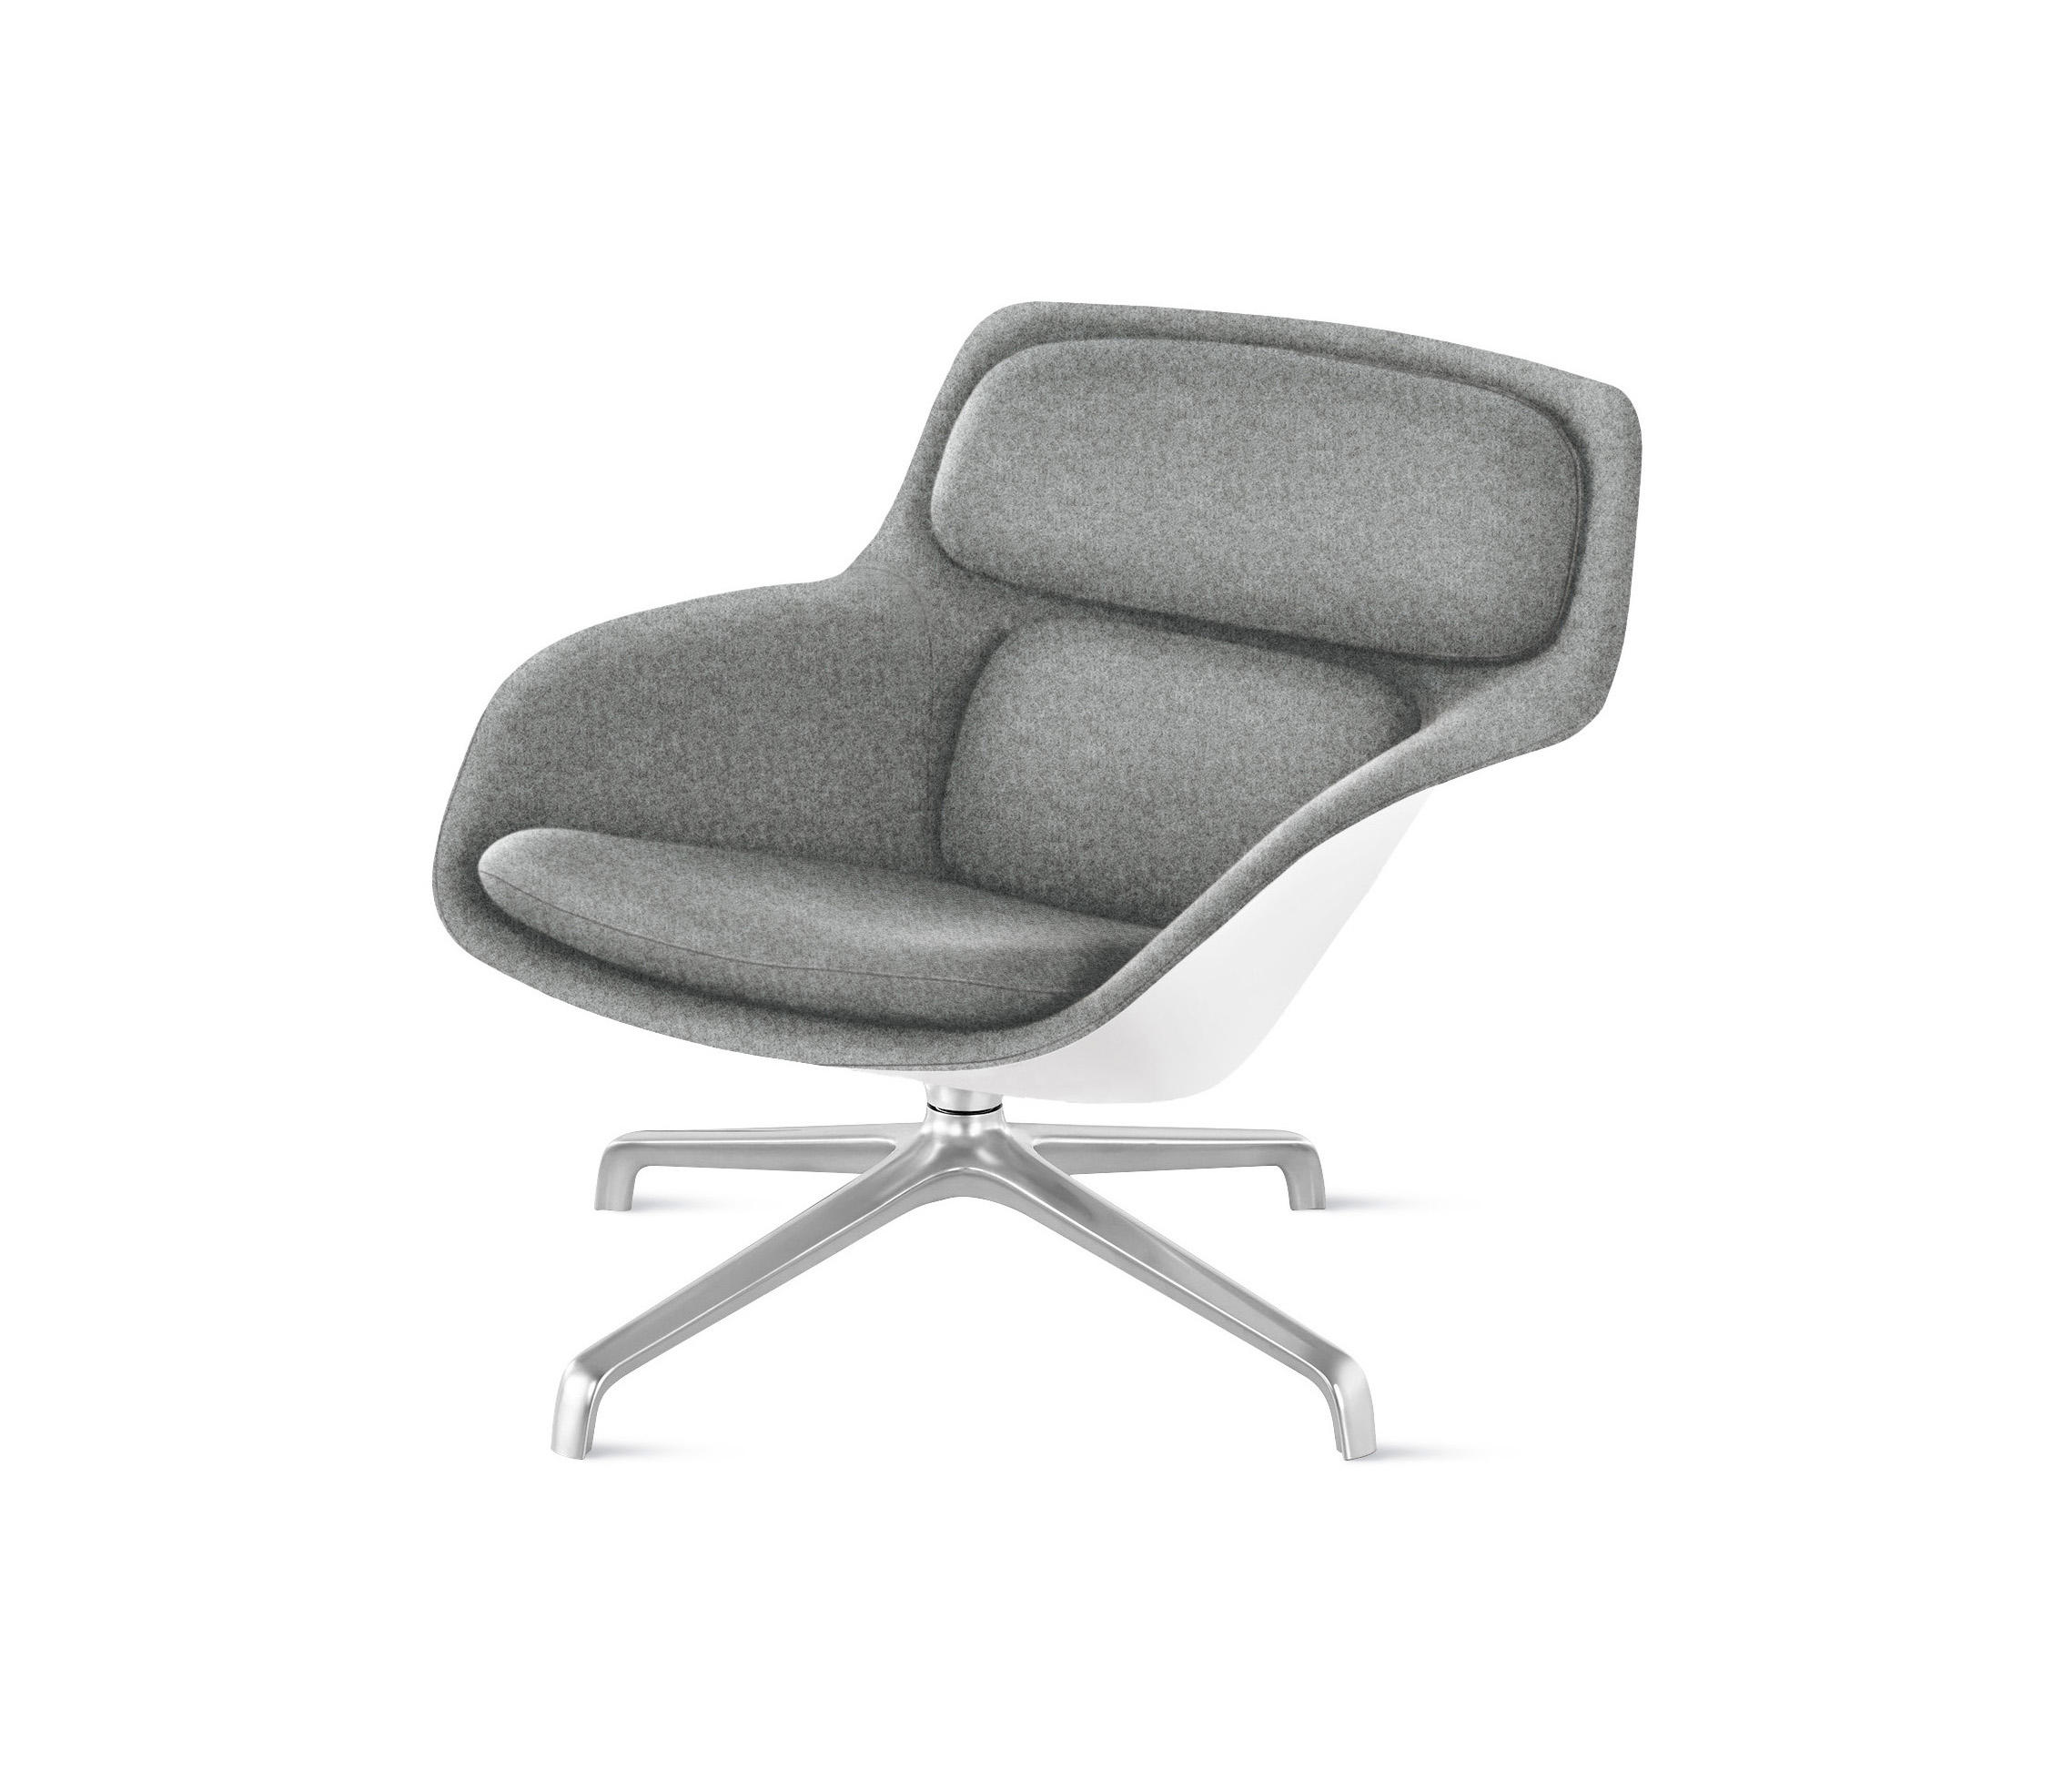 Striad Low Back Lounge Chair Lounge Chairs From Design